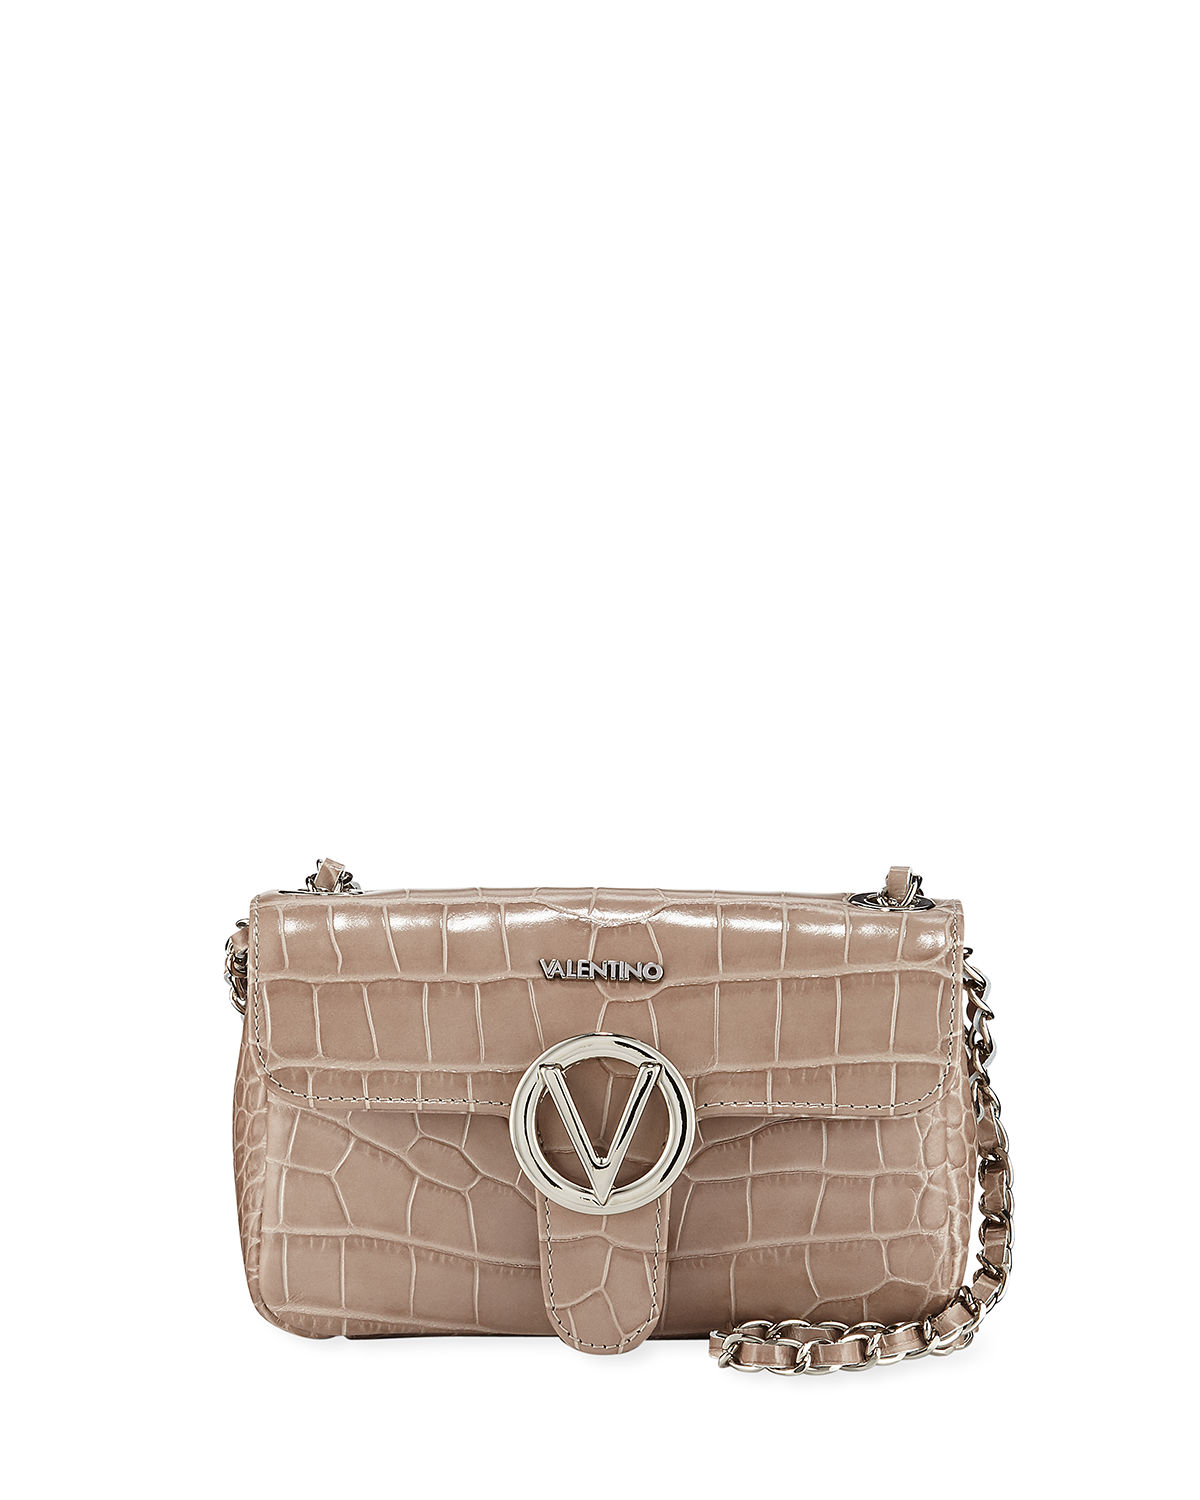 792b689b5d Valentino By Mario Valentino Poisson Croc-Embossed Leather Shoulder Bag In  Praline